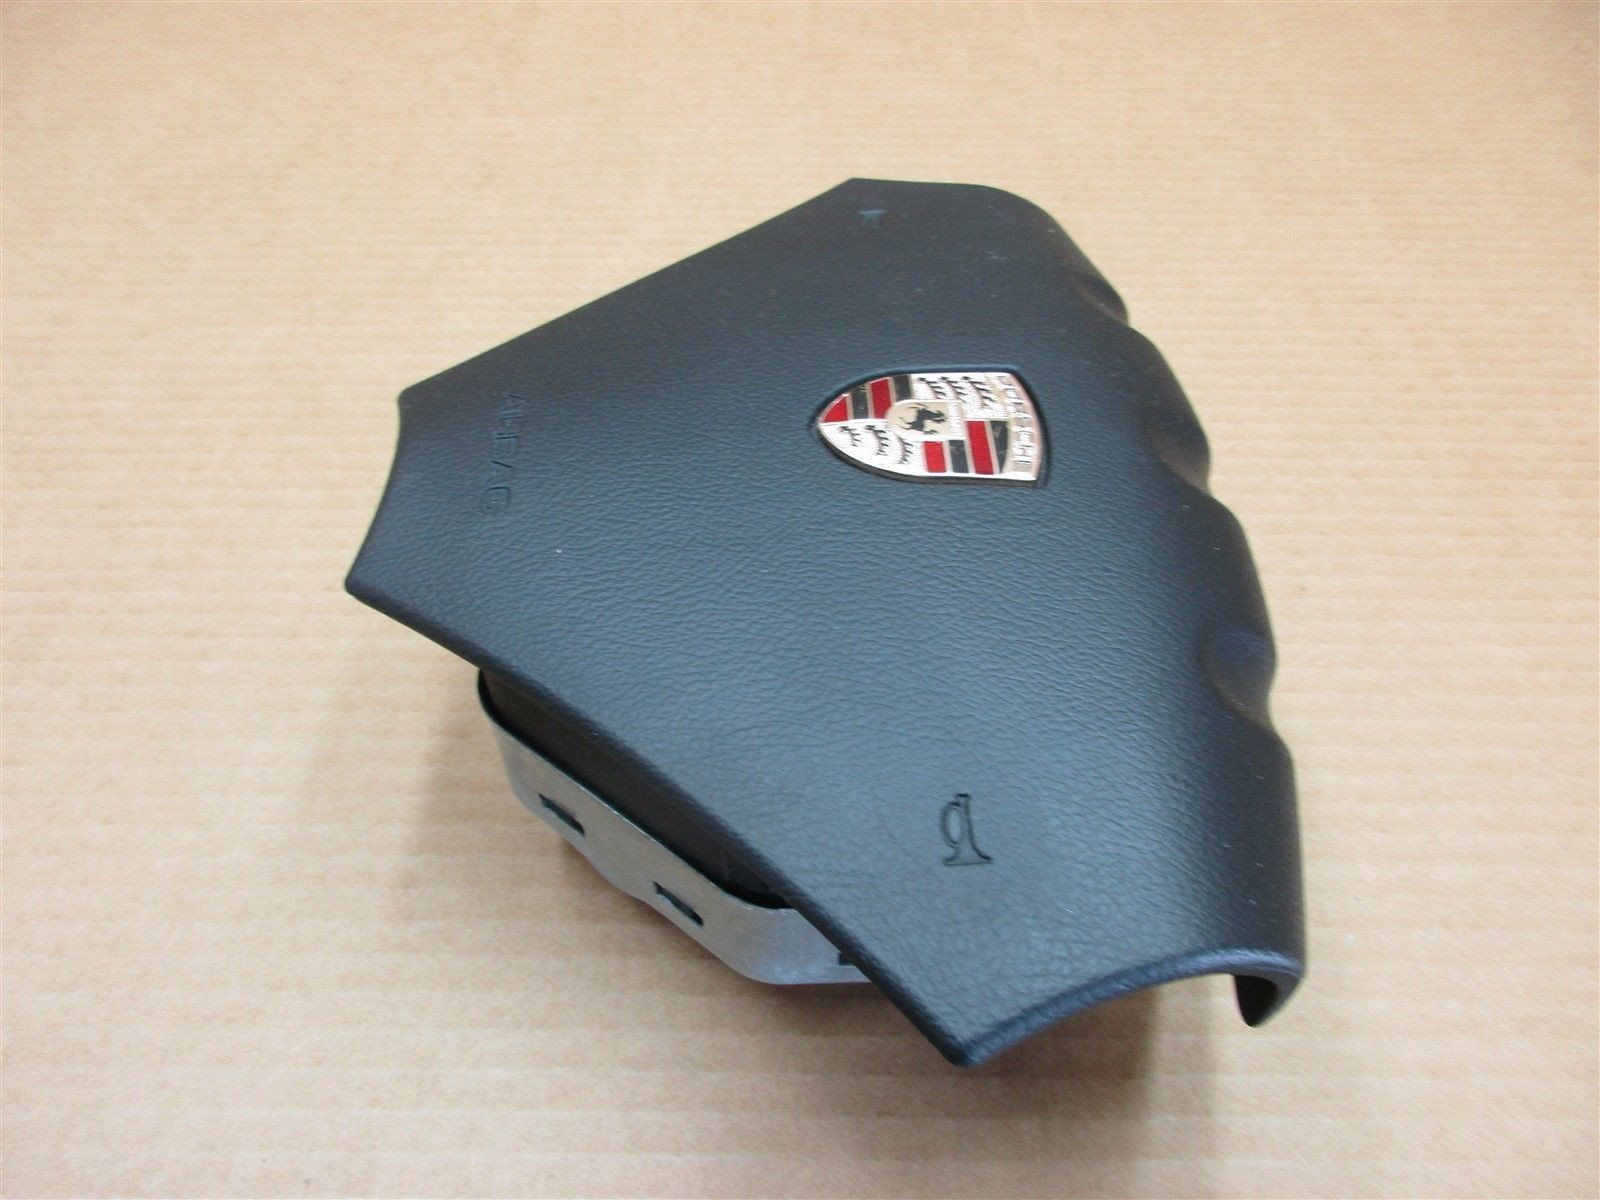 04 Cayenne S Porsche 955 L Black Vinyl 3 SPOKE STEERING WHEEL AIR BAG 199,414